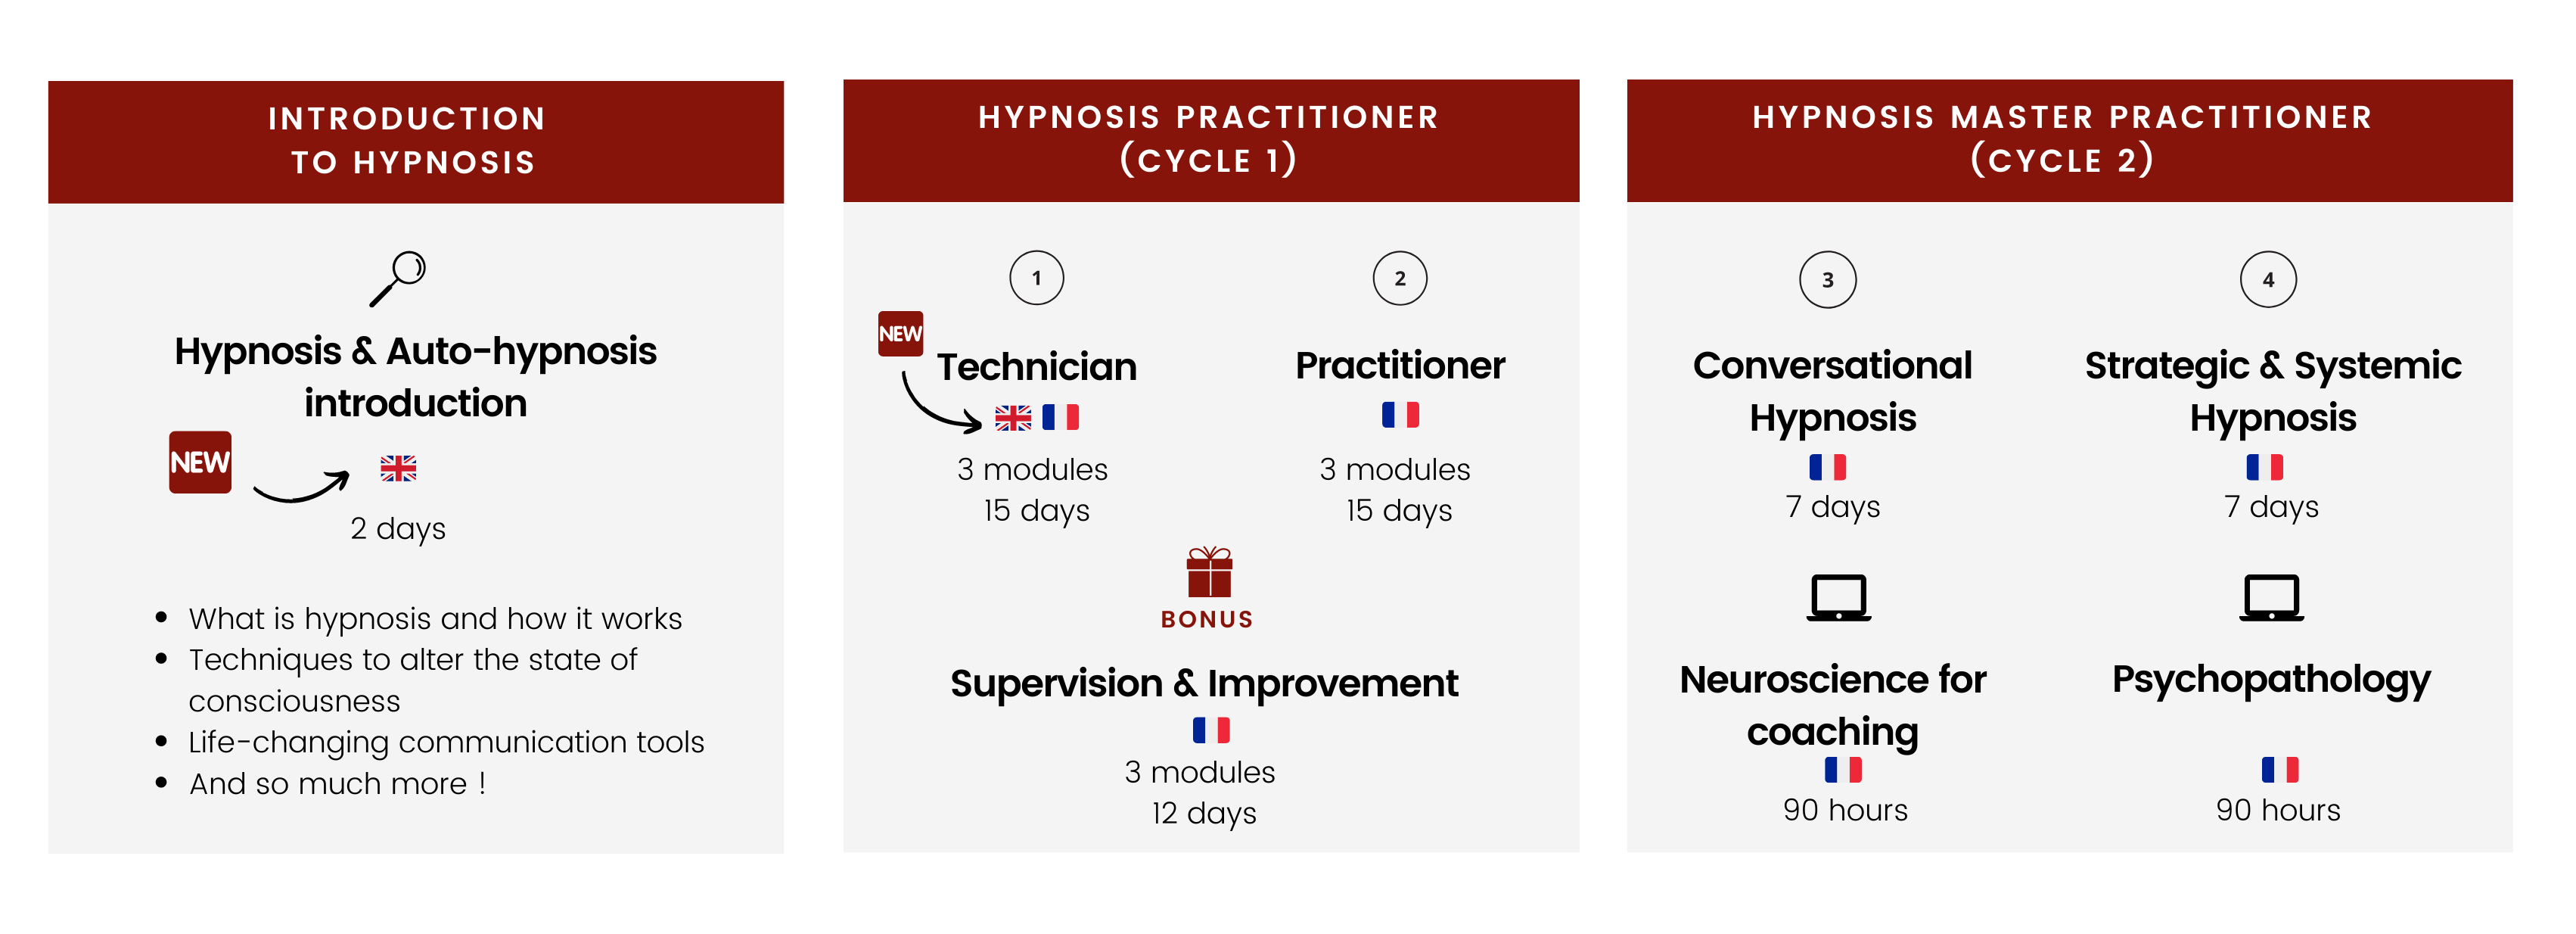 Formation hypnose suisse